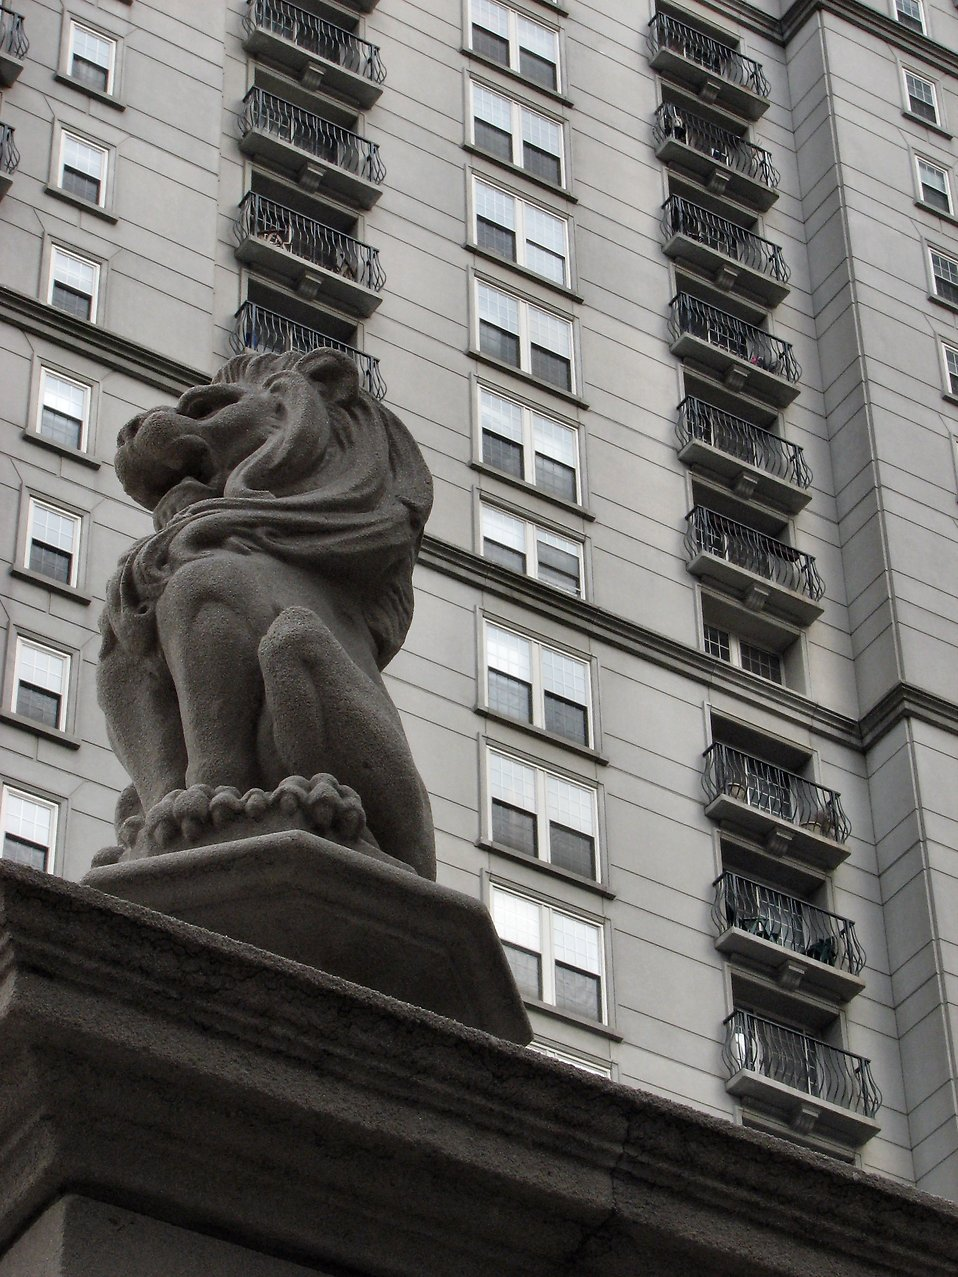 Statue of a lion in front of a tall building in Atlanta, Georgia : Free Stock Photo